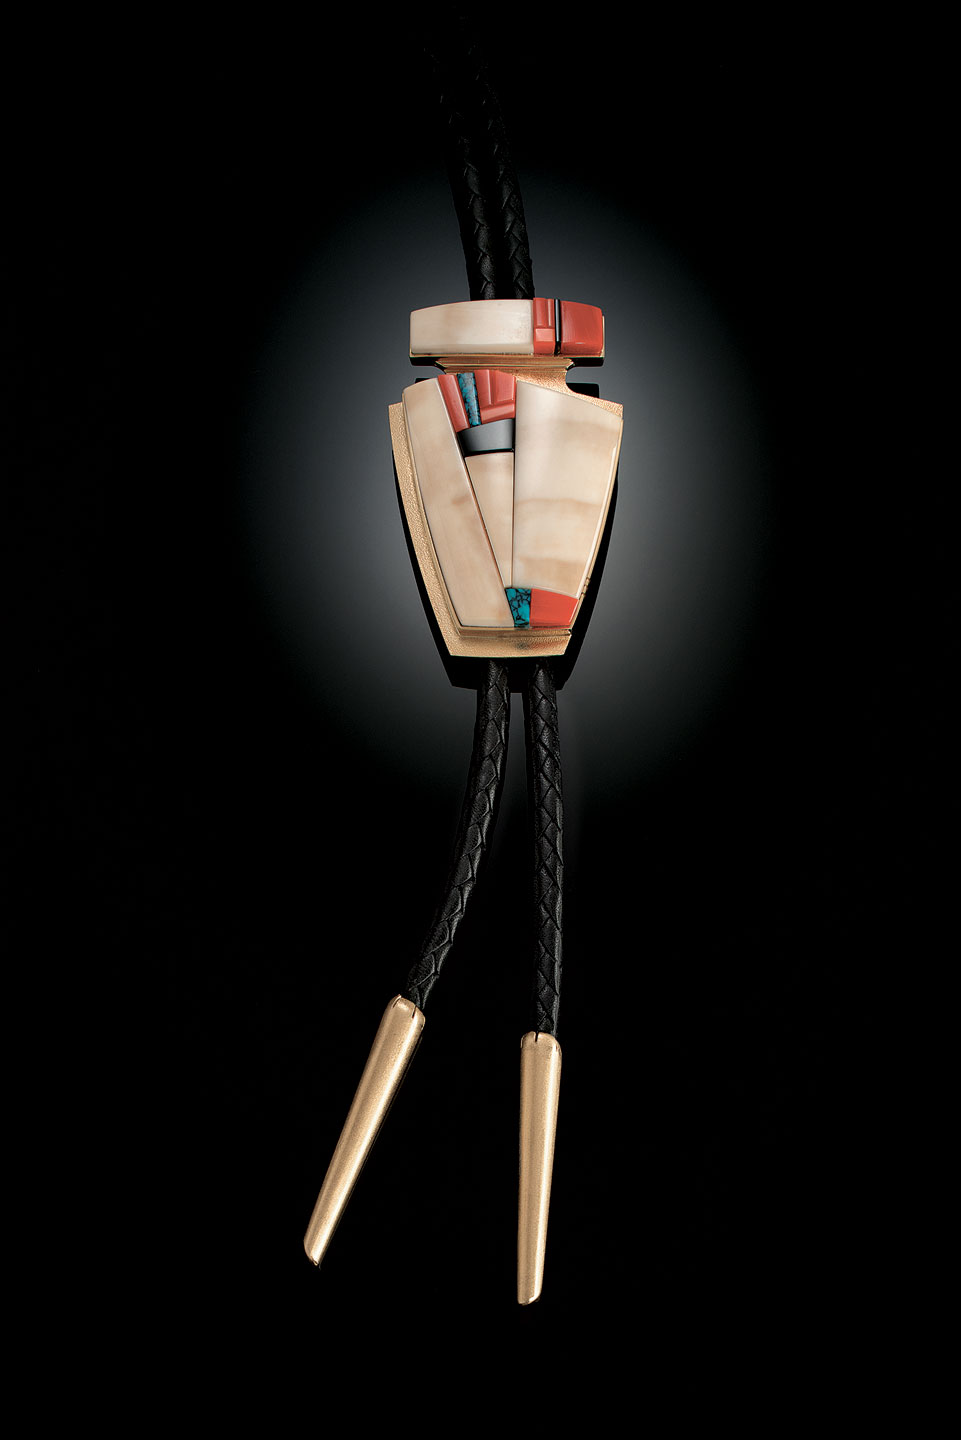 RICHARD CHAVEZ:  BOLO TIE of fossilized ivory, coral, black jade, turquoise, and fourteen karat gold, 8.3 x 5.4 centimeters, 1998.  Private Collection.